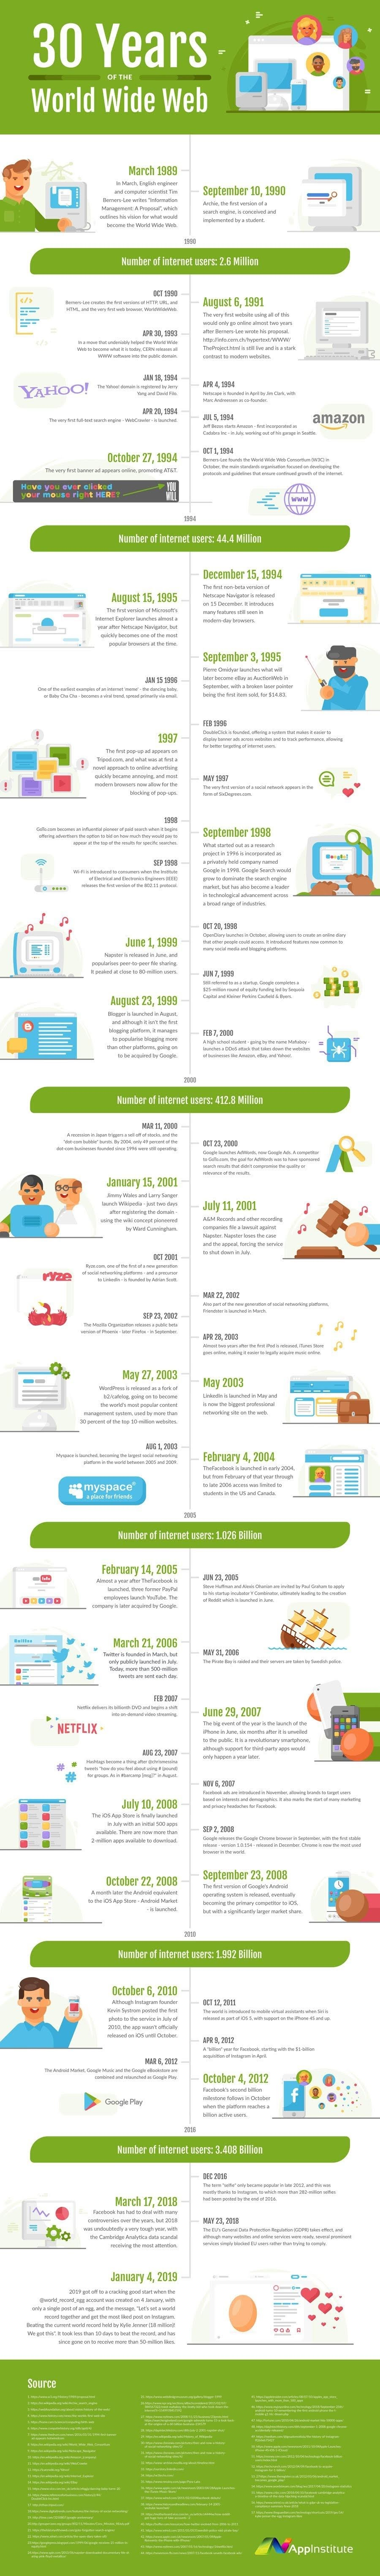 Celebrating the World Wide Web 30 Years #infographic